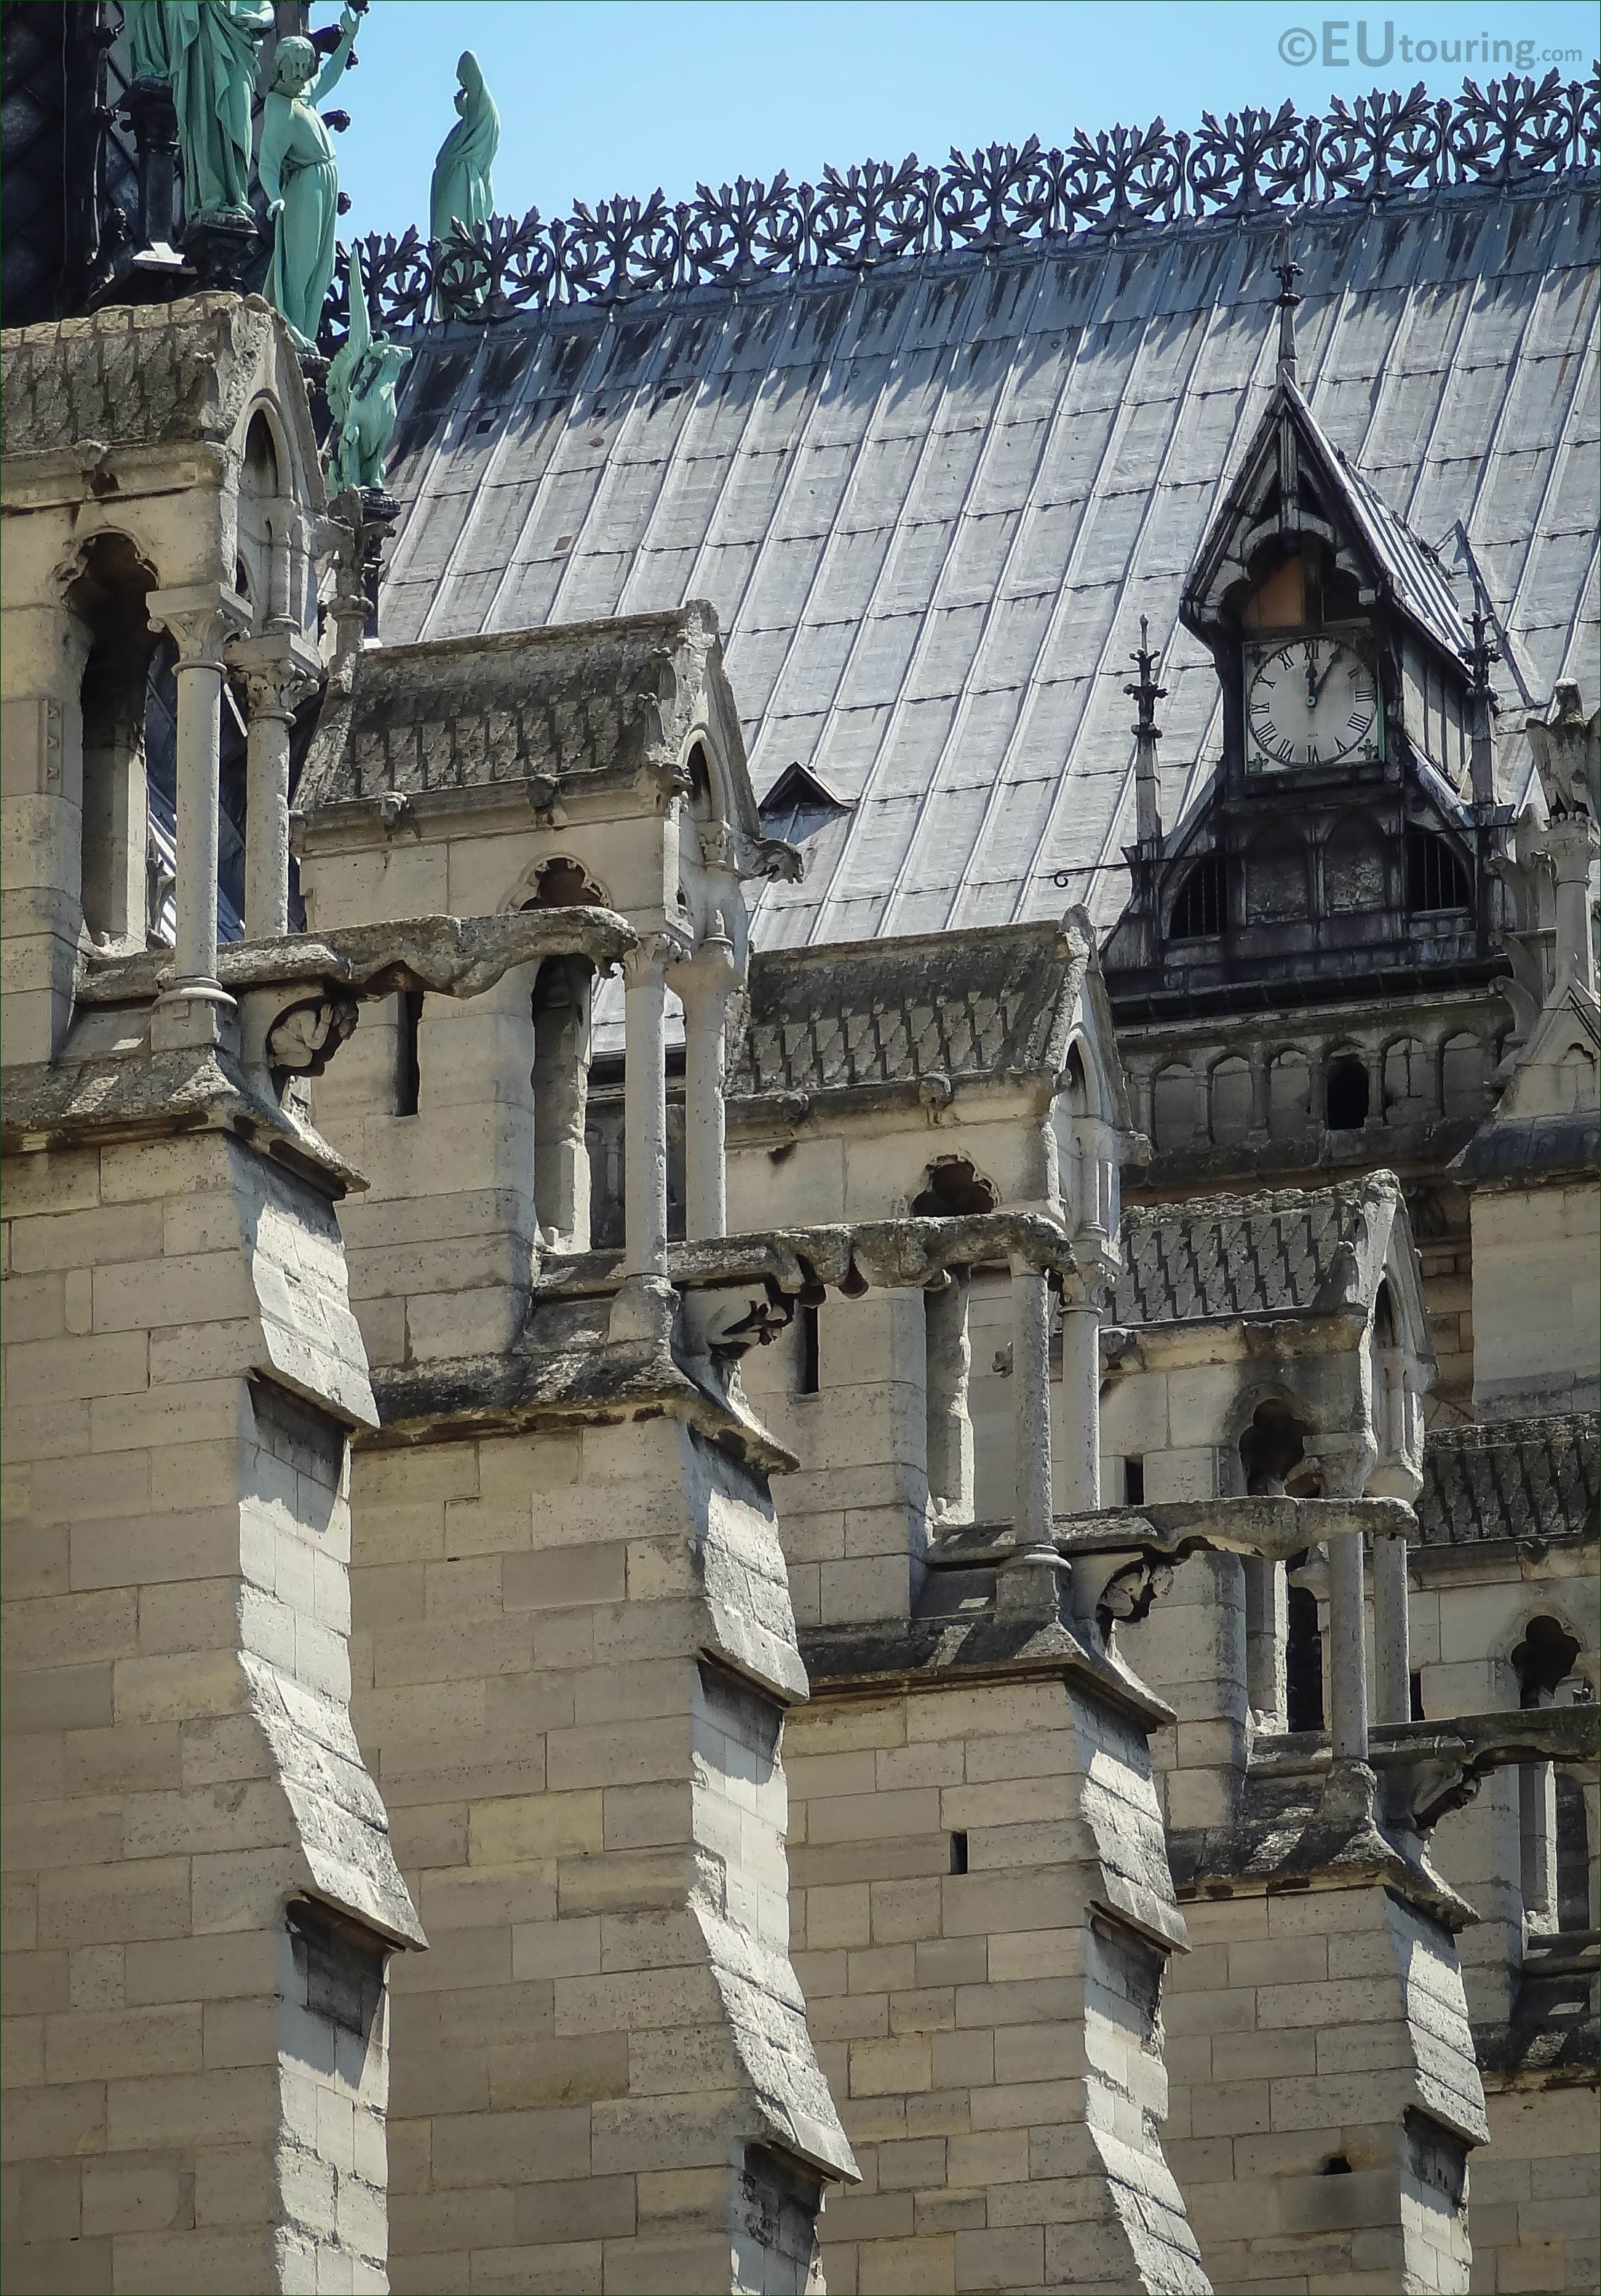 Hd Photographs Of Gargoyles On Notre Dame Cathedral In Paris